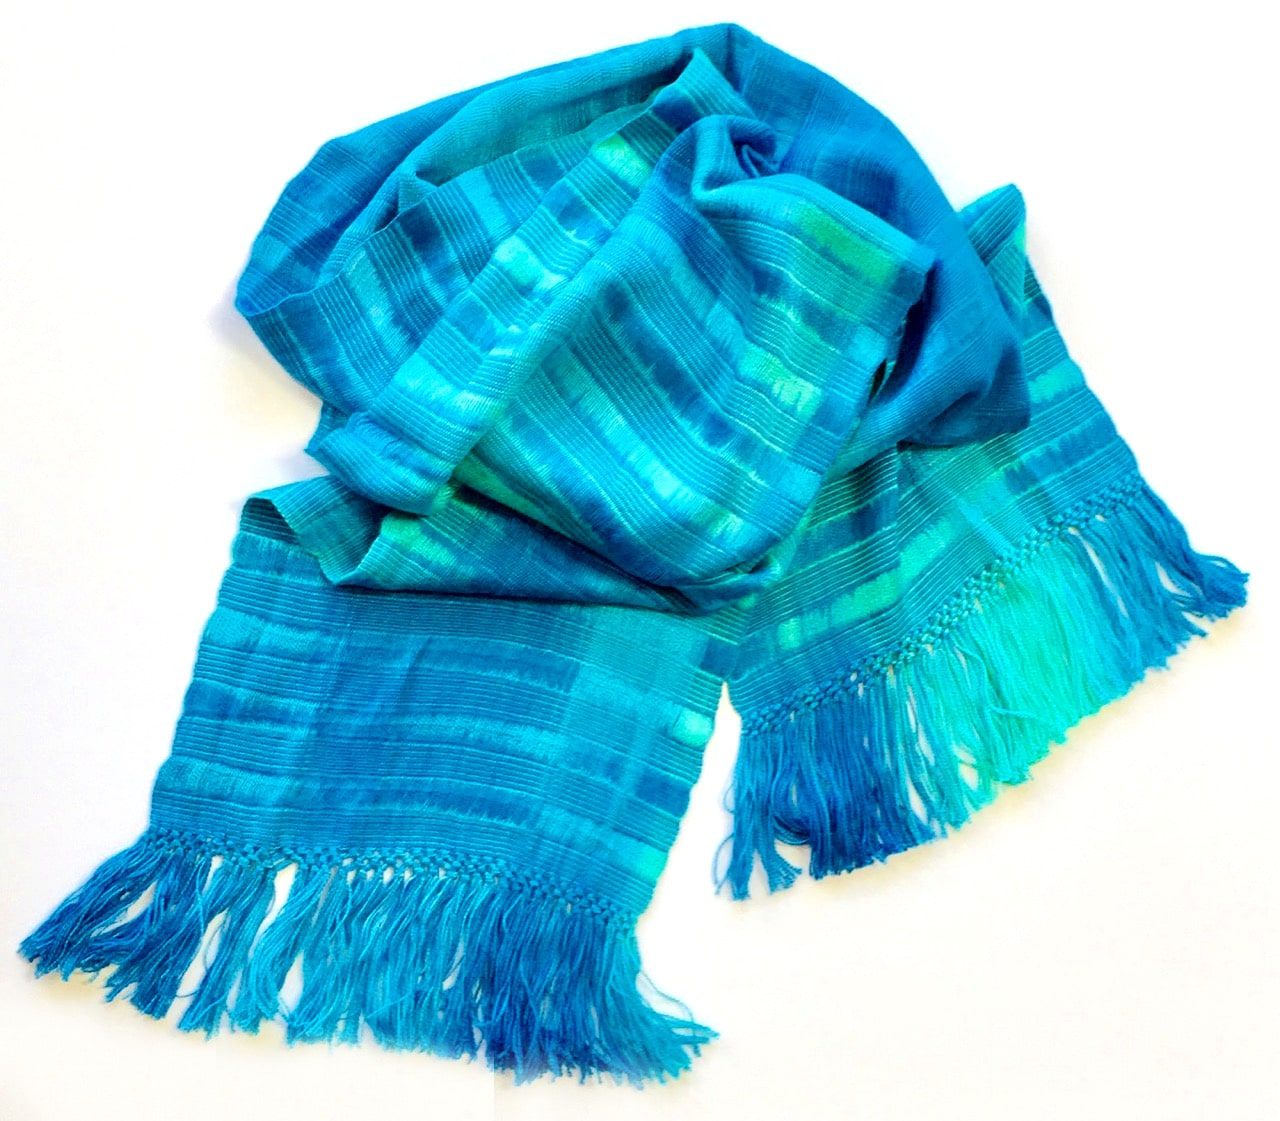 Turquoise, Celestial Blues - Lightweight Bamboo Open-Weave  Handwoven Scarf 8 x 68